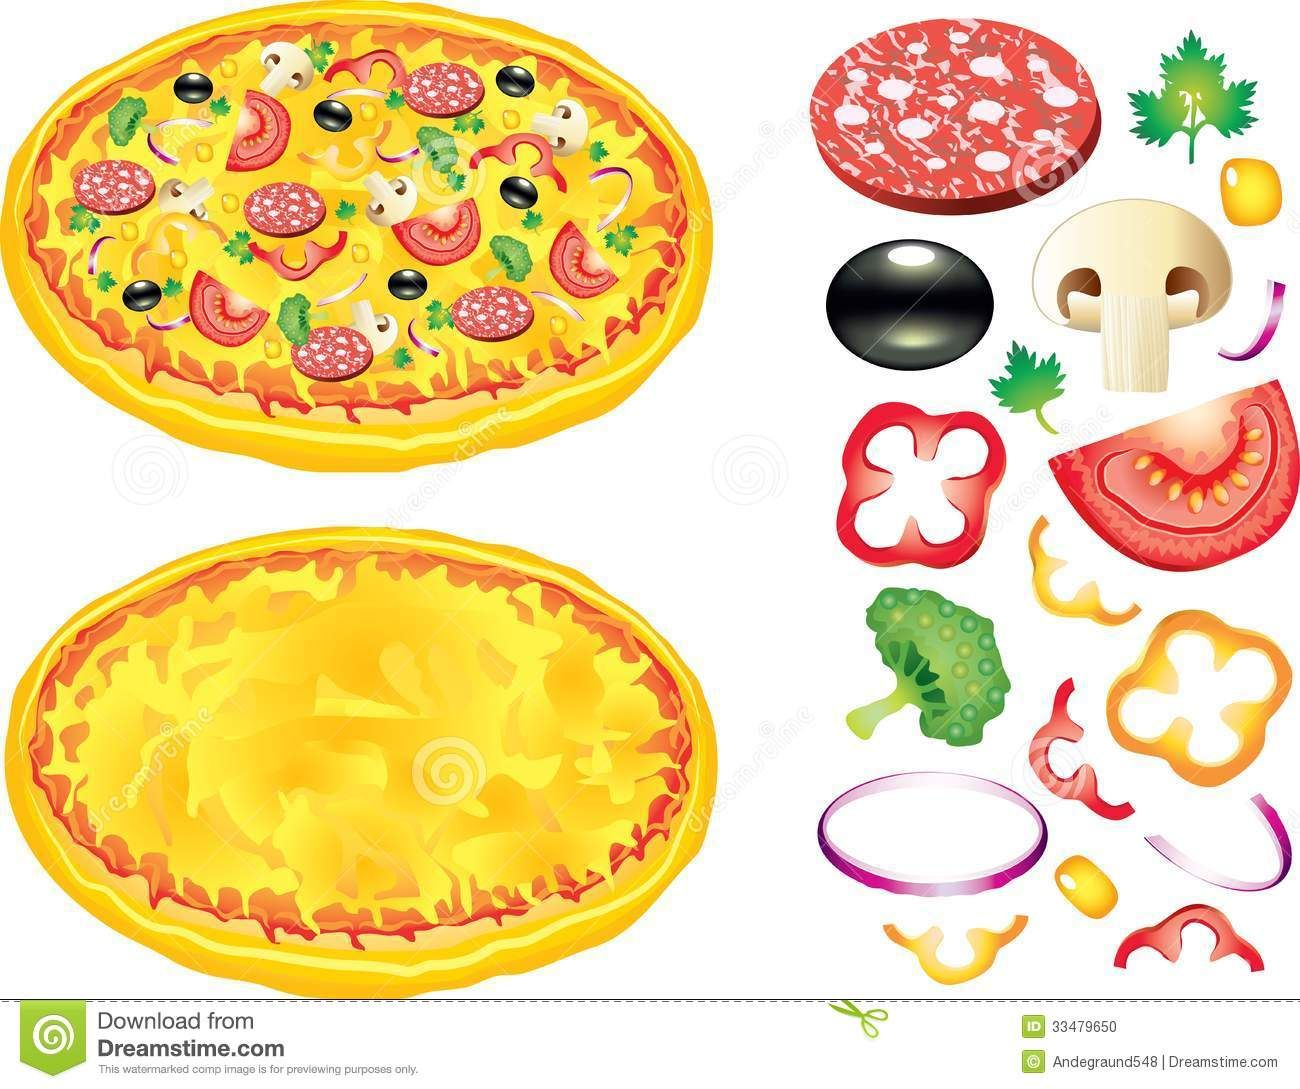 photo regarding Printable Pizza Toppings named Pizza Toppings Clip Artwork Absolutely free Printables Pizza, Pizza artwork